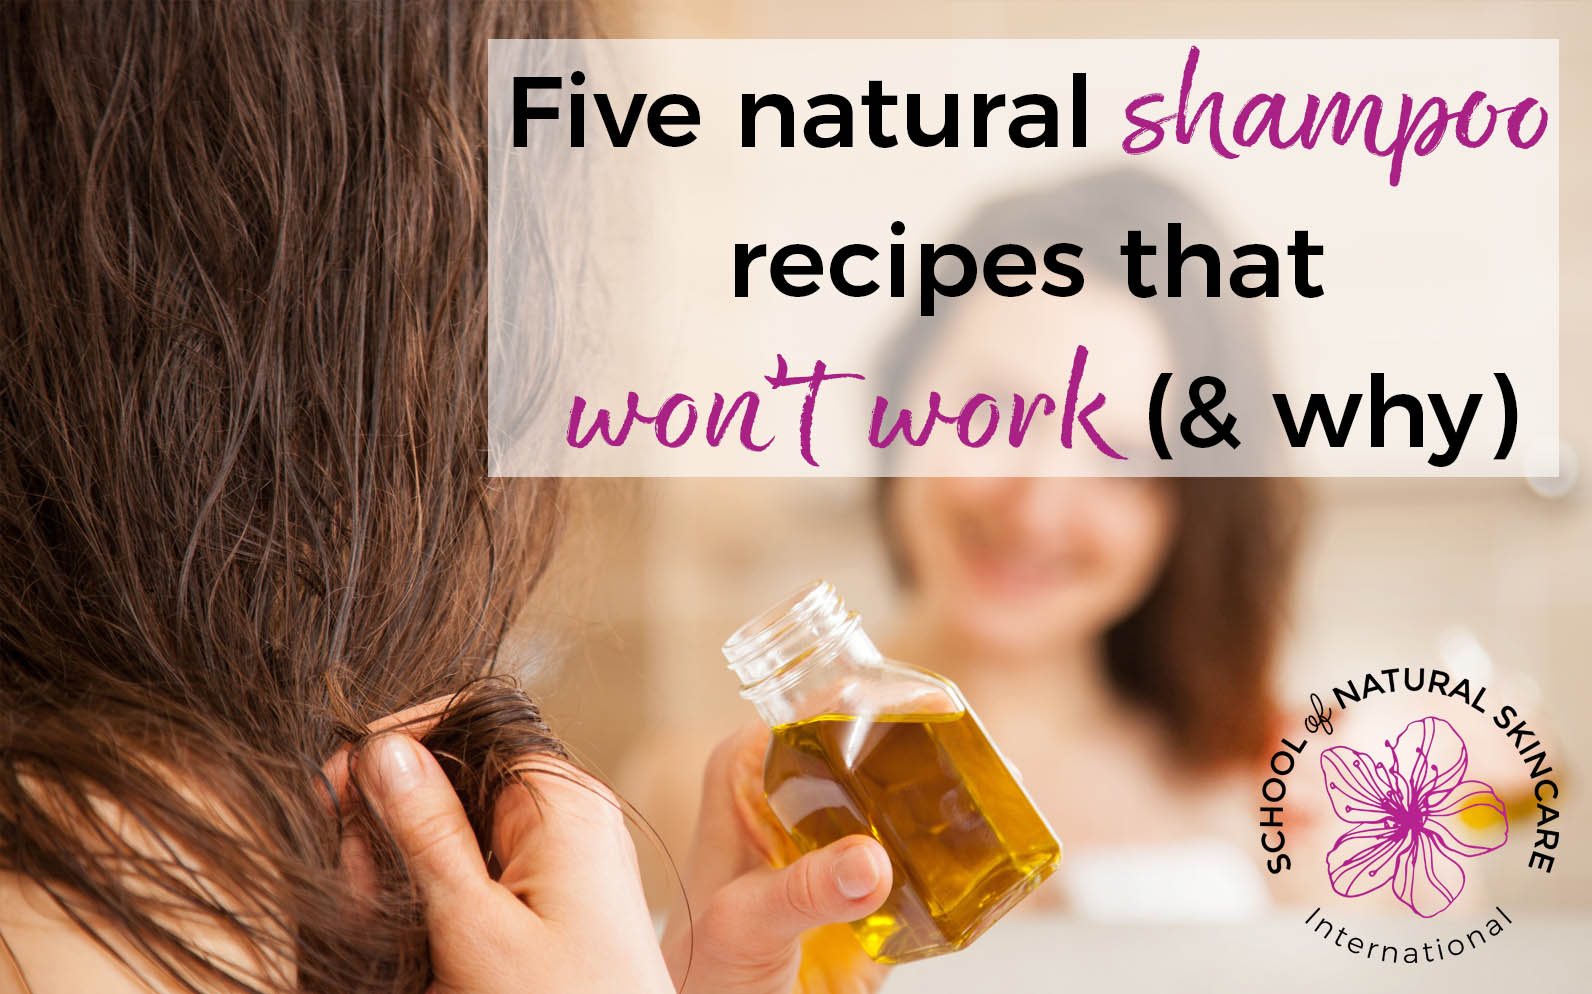 Natural Shampoo Recipes